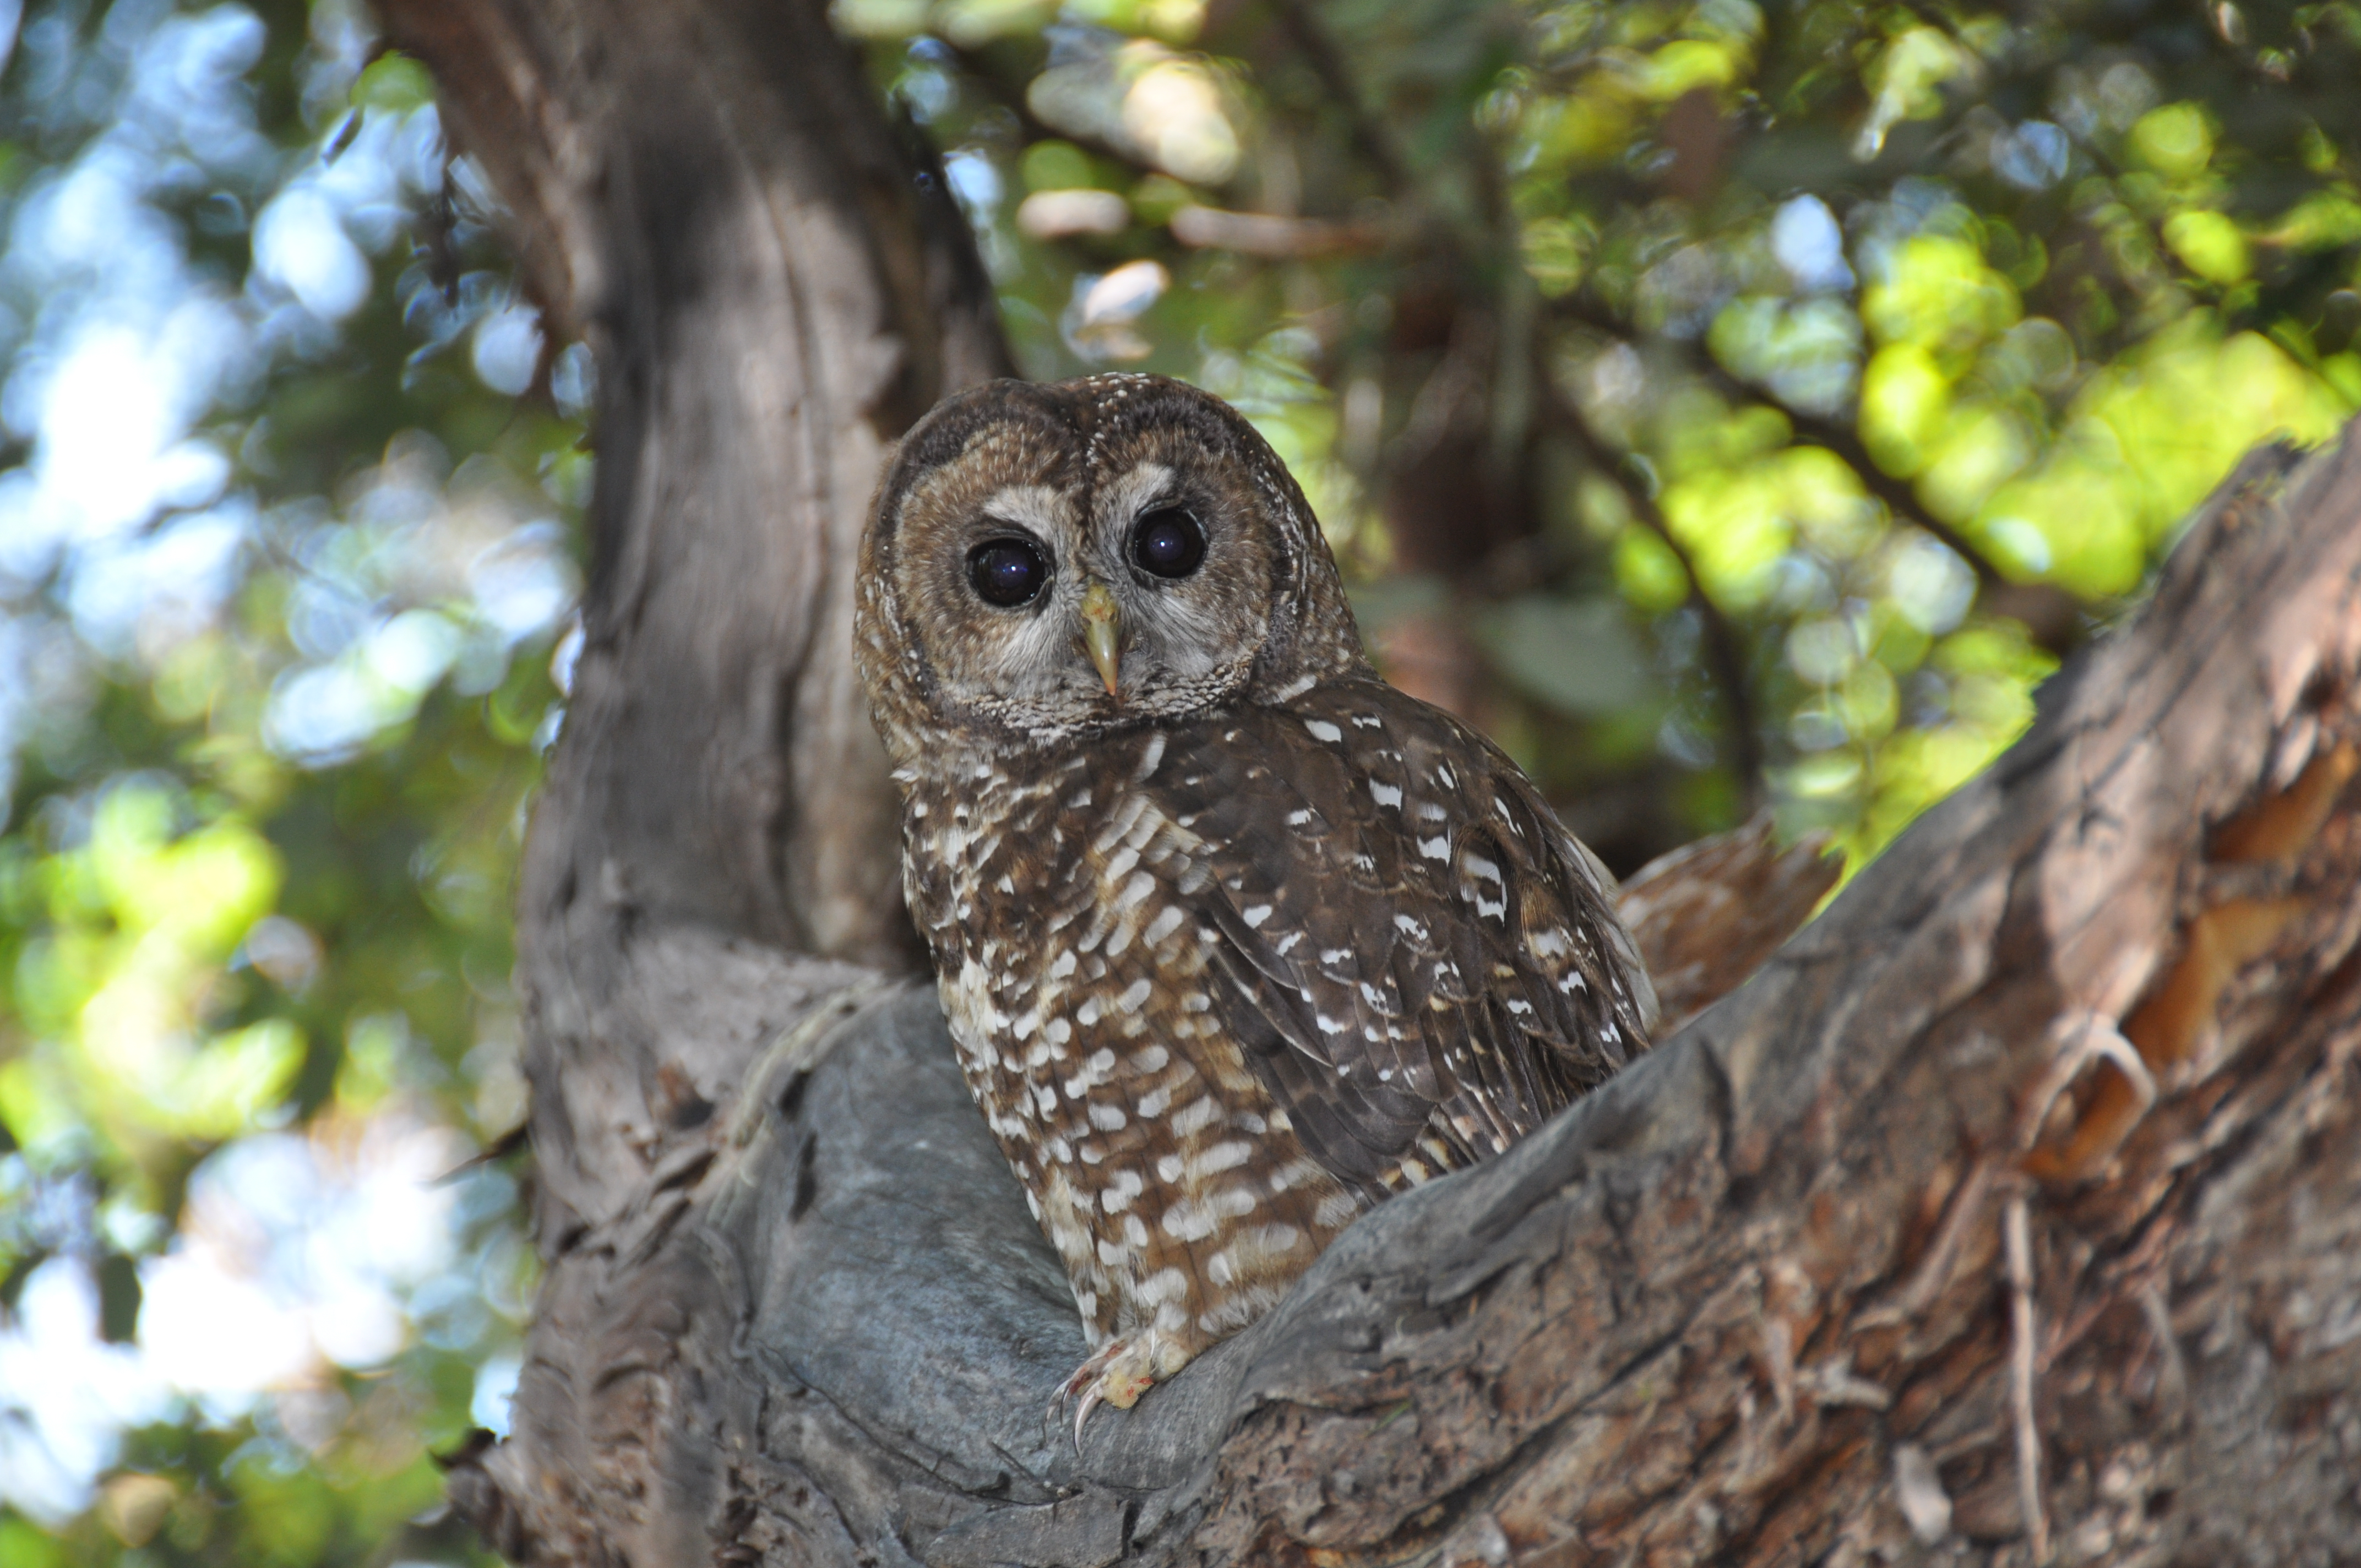 Marijuana Farms Expose Spotted Owls to Rat Poison in